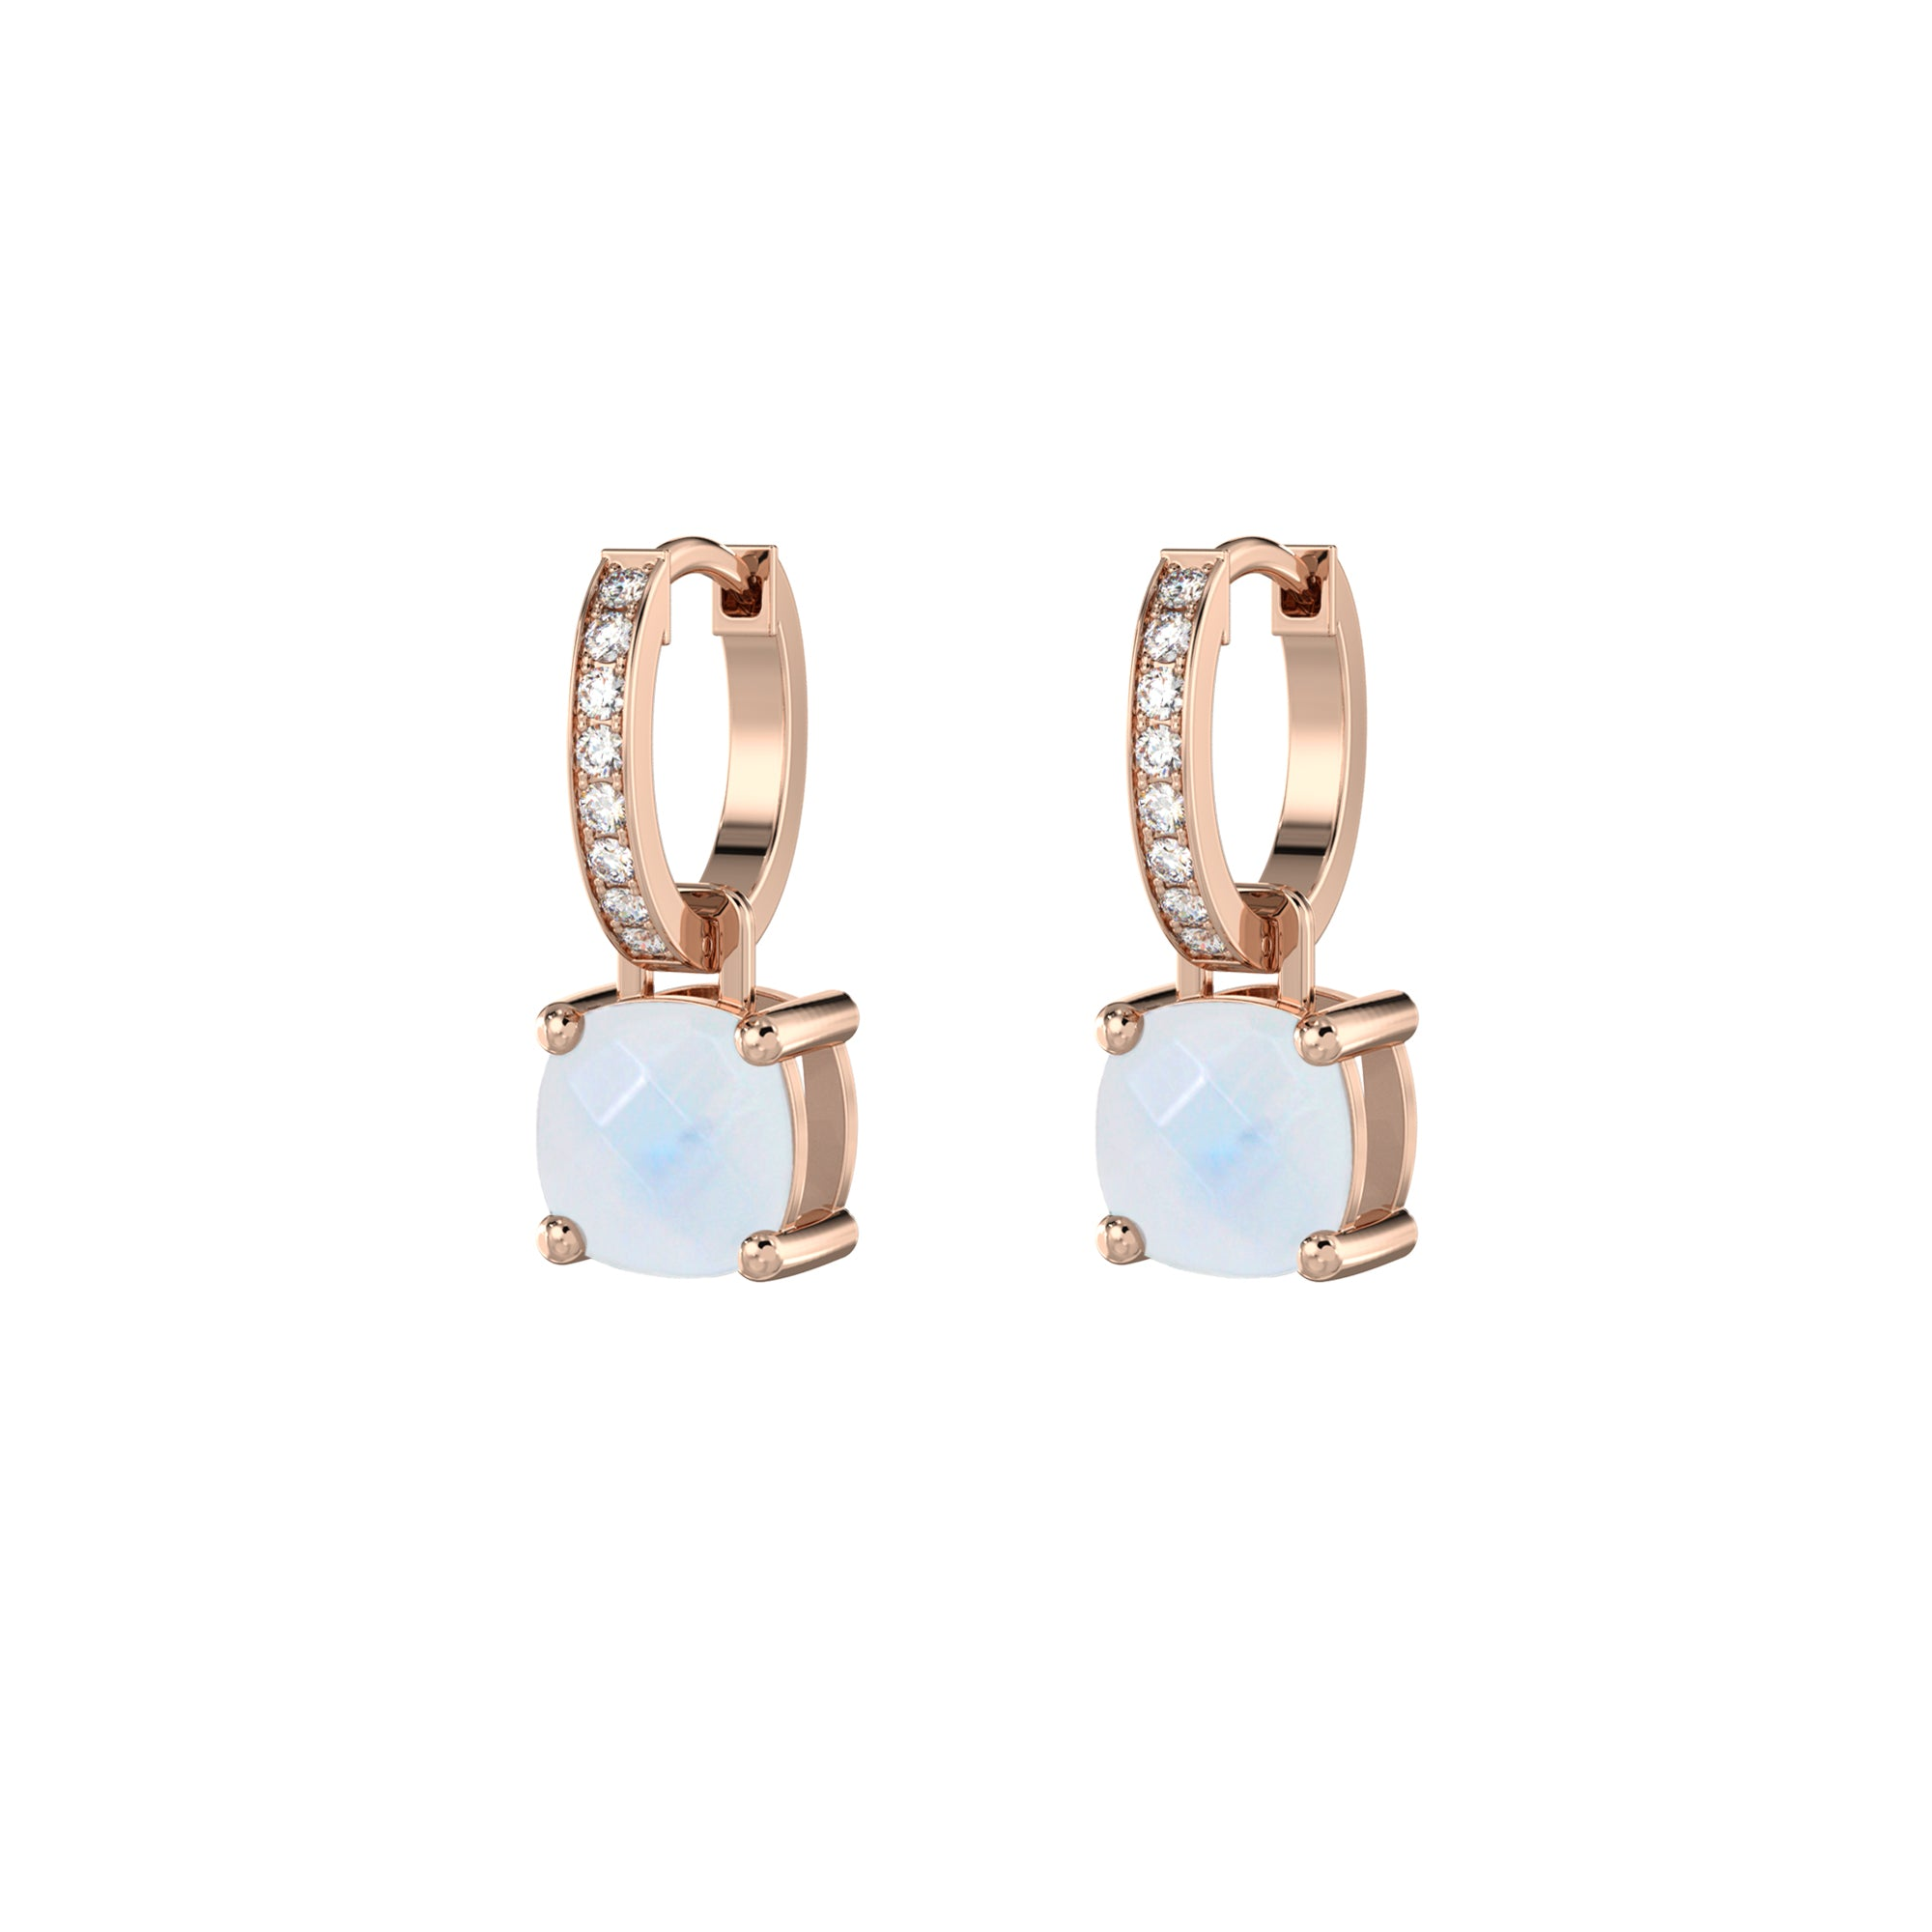 925 Silver Luxe Series Earrings Charms - Wylie (Moonstone) - Rose Gold Plated